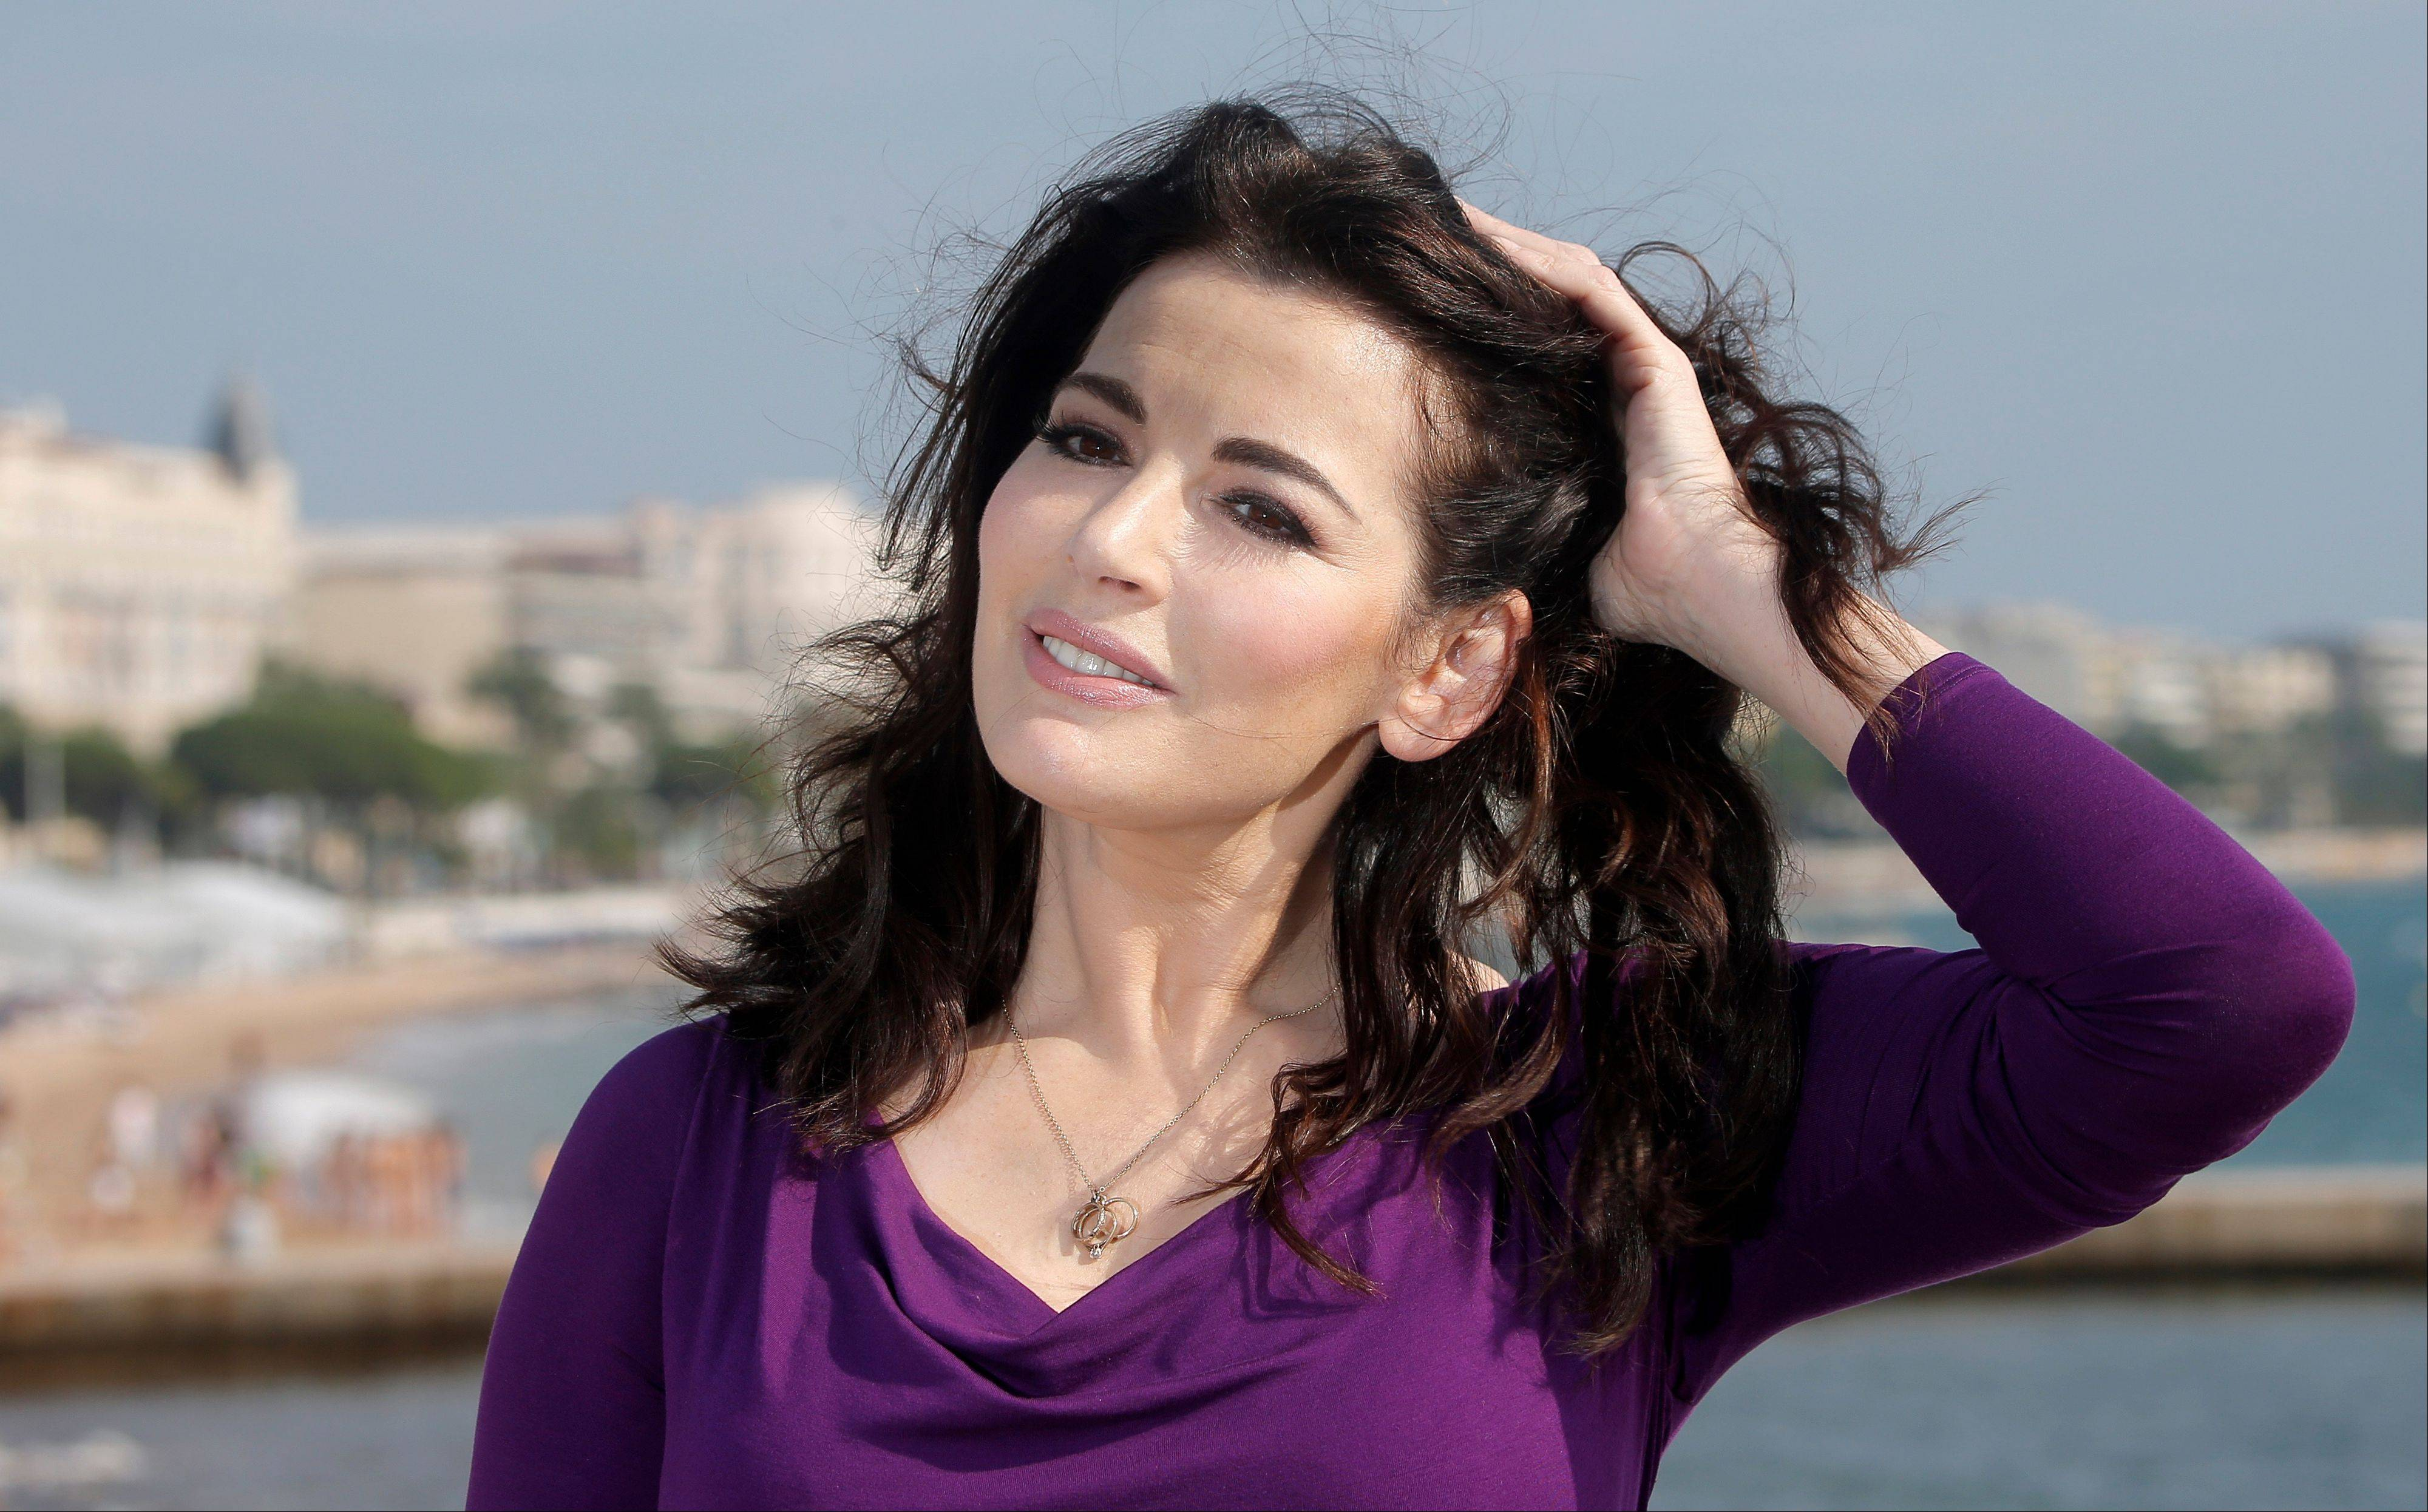 Food writer, journalist and broadcaster Nigella Lawson of Britain poses during the 28th International Film and Programme Market for TV, Video, Cable and Satellite in Cannes, southeastern France. In summer 2013, photos of her husband appearing to choke her surfaced. Then two former employees accused of using the couple�s credit cards for more than $1 million in fraudulent charges claiming she had sanctioned their spending to hush them up about her heavy drug use.